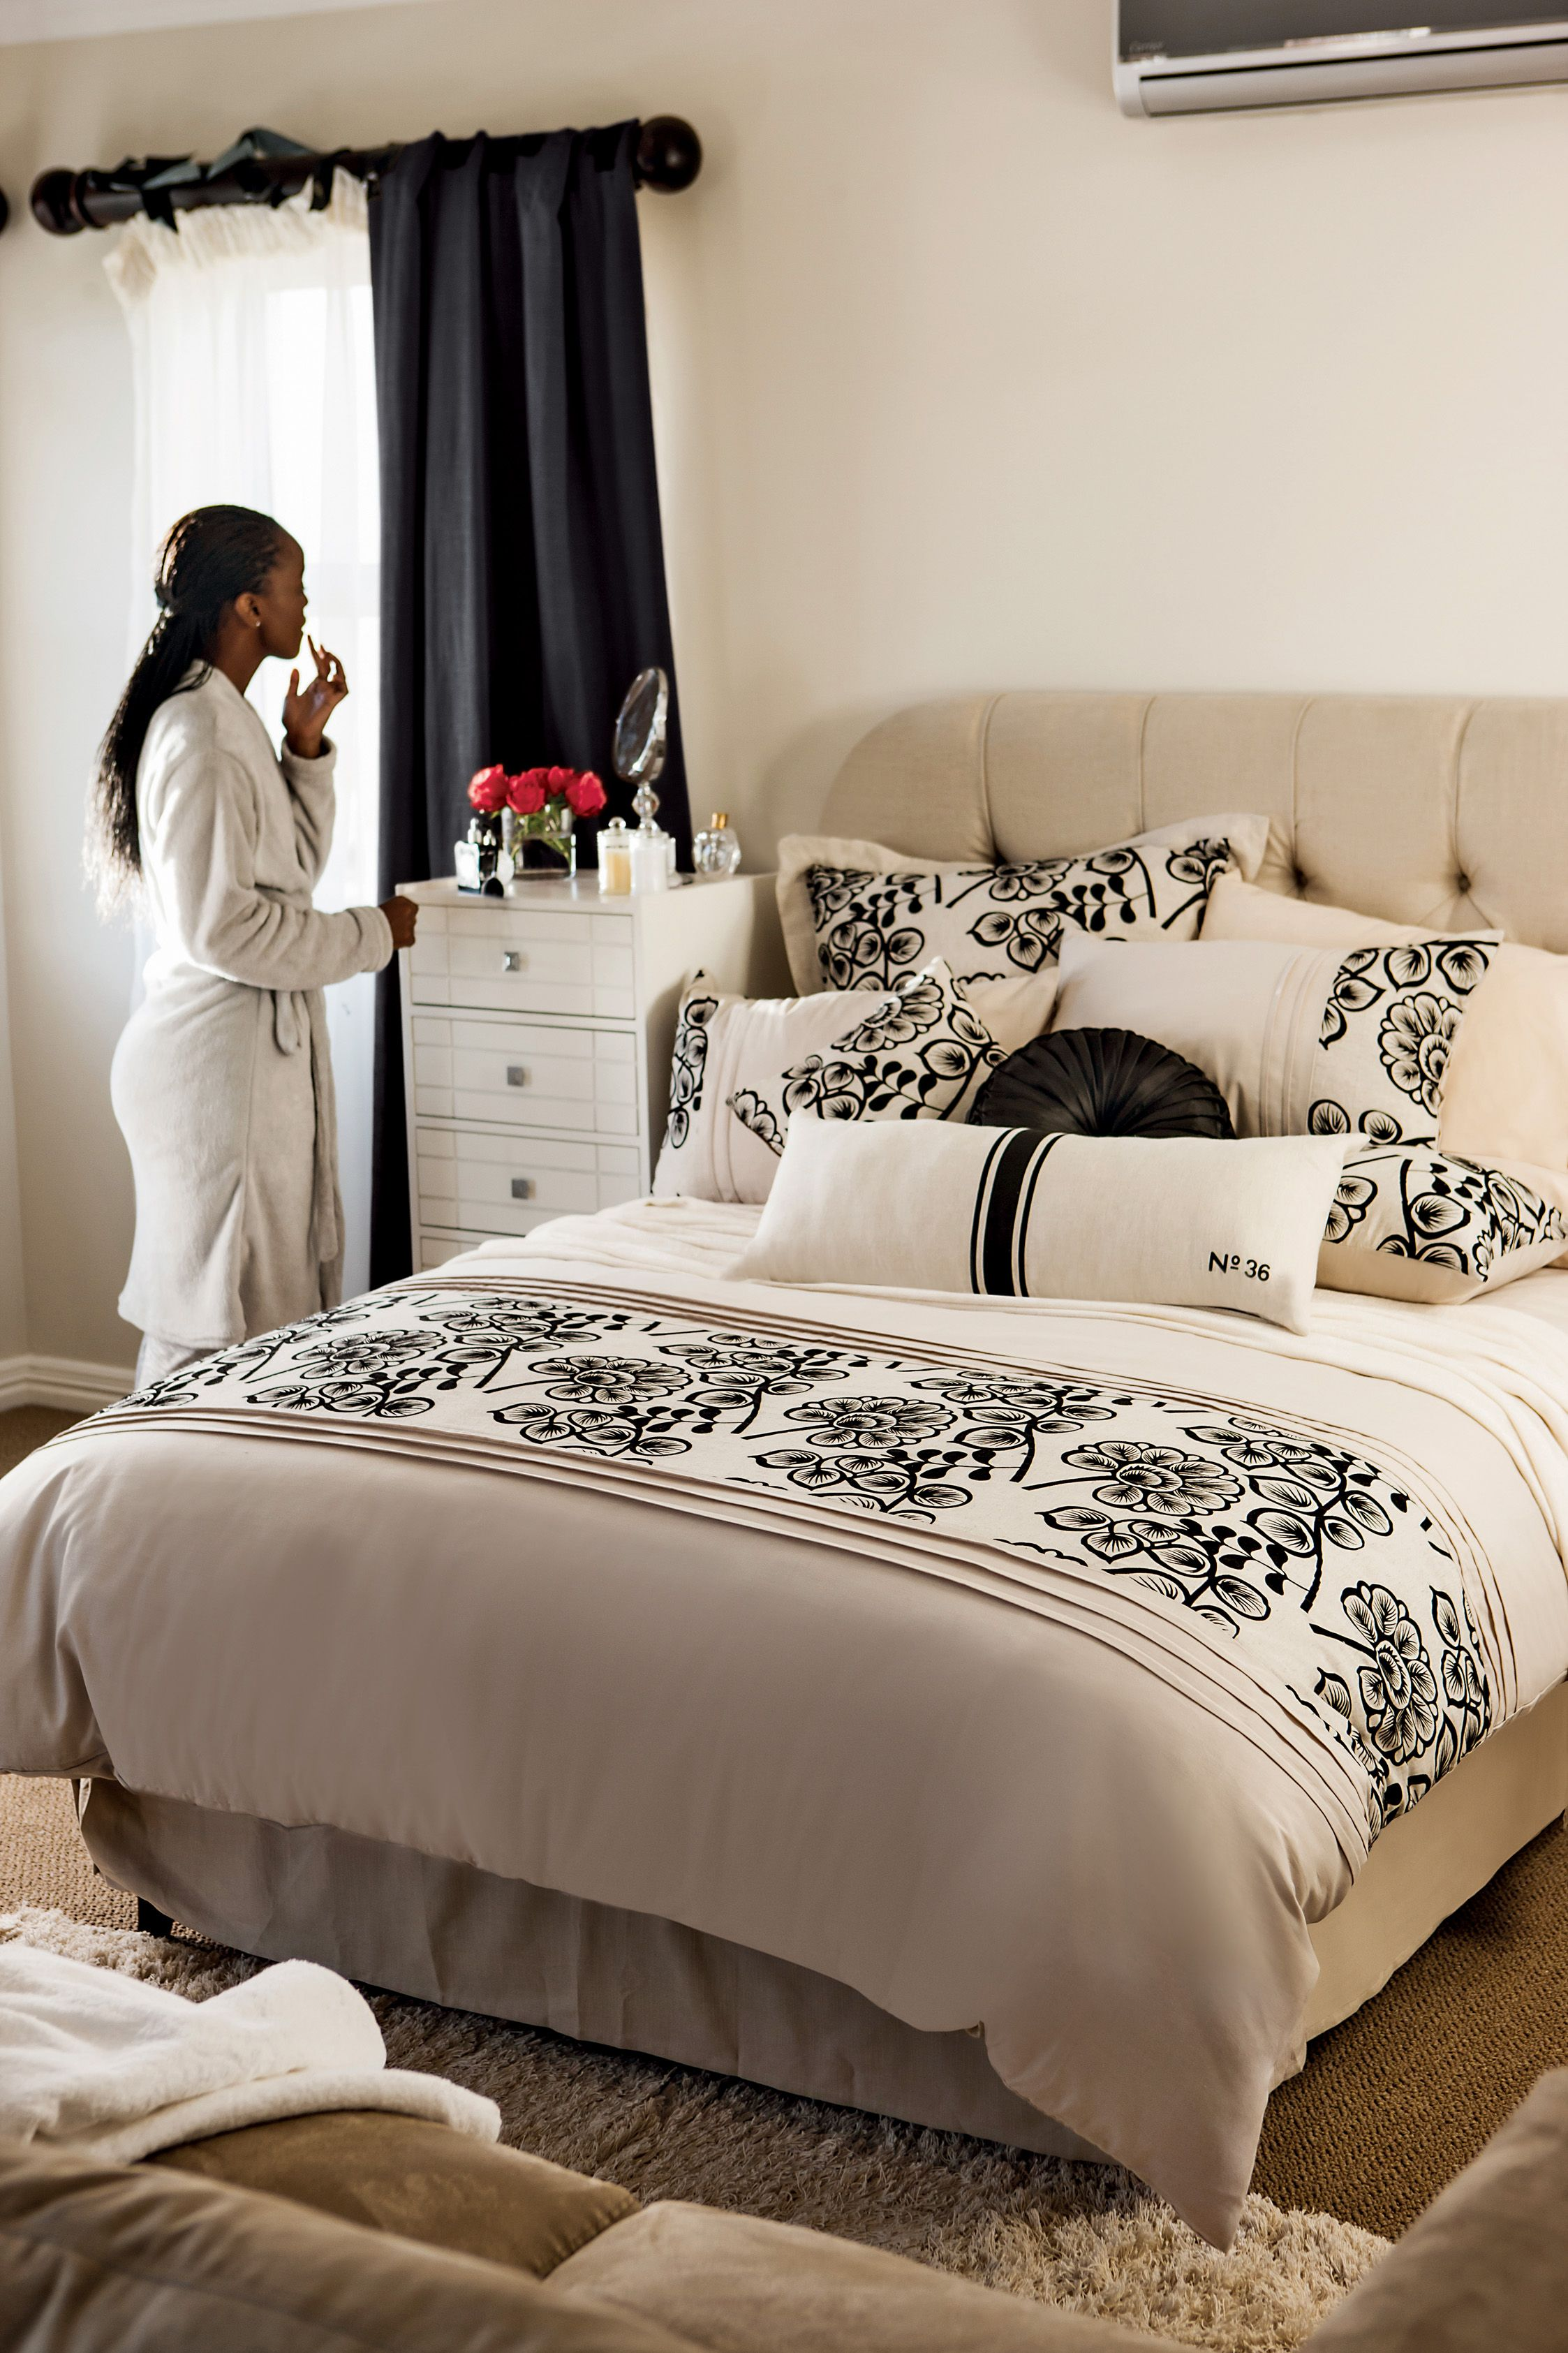 Mr Price Home Online Shopping Homeware Furniture Stores Mr Price Home Home Decor Bedroom Grey Bedroom Design